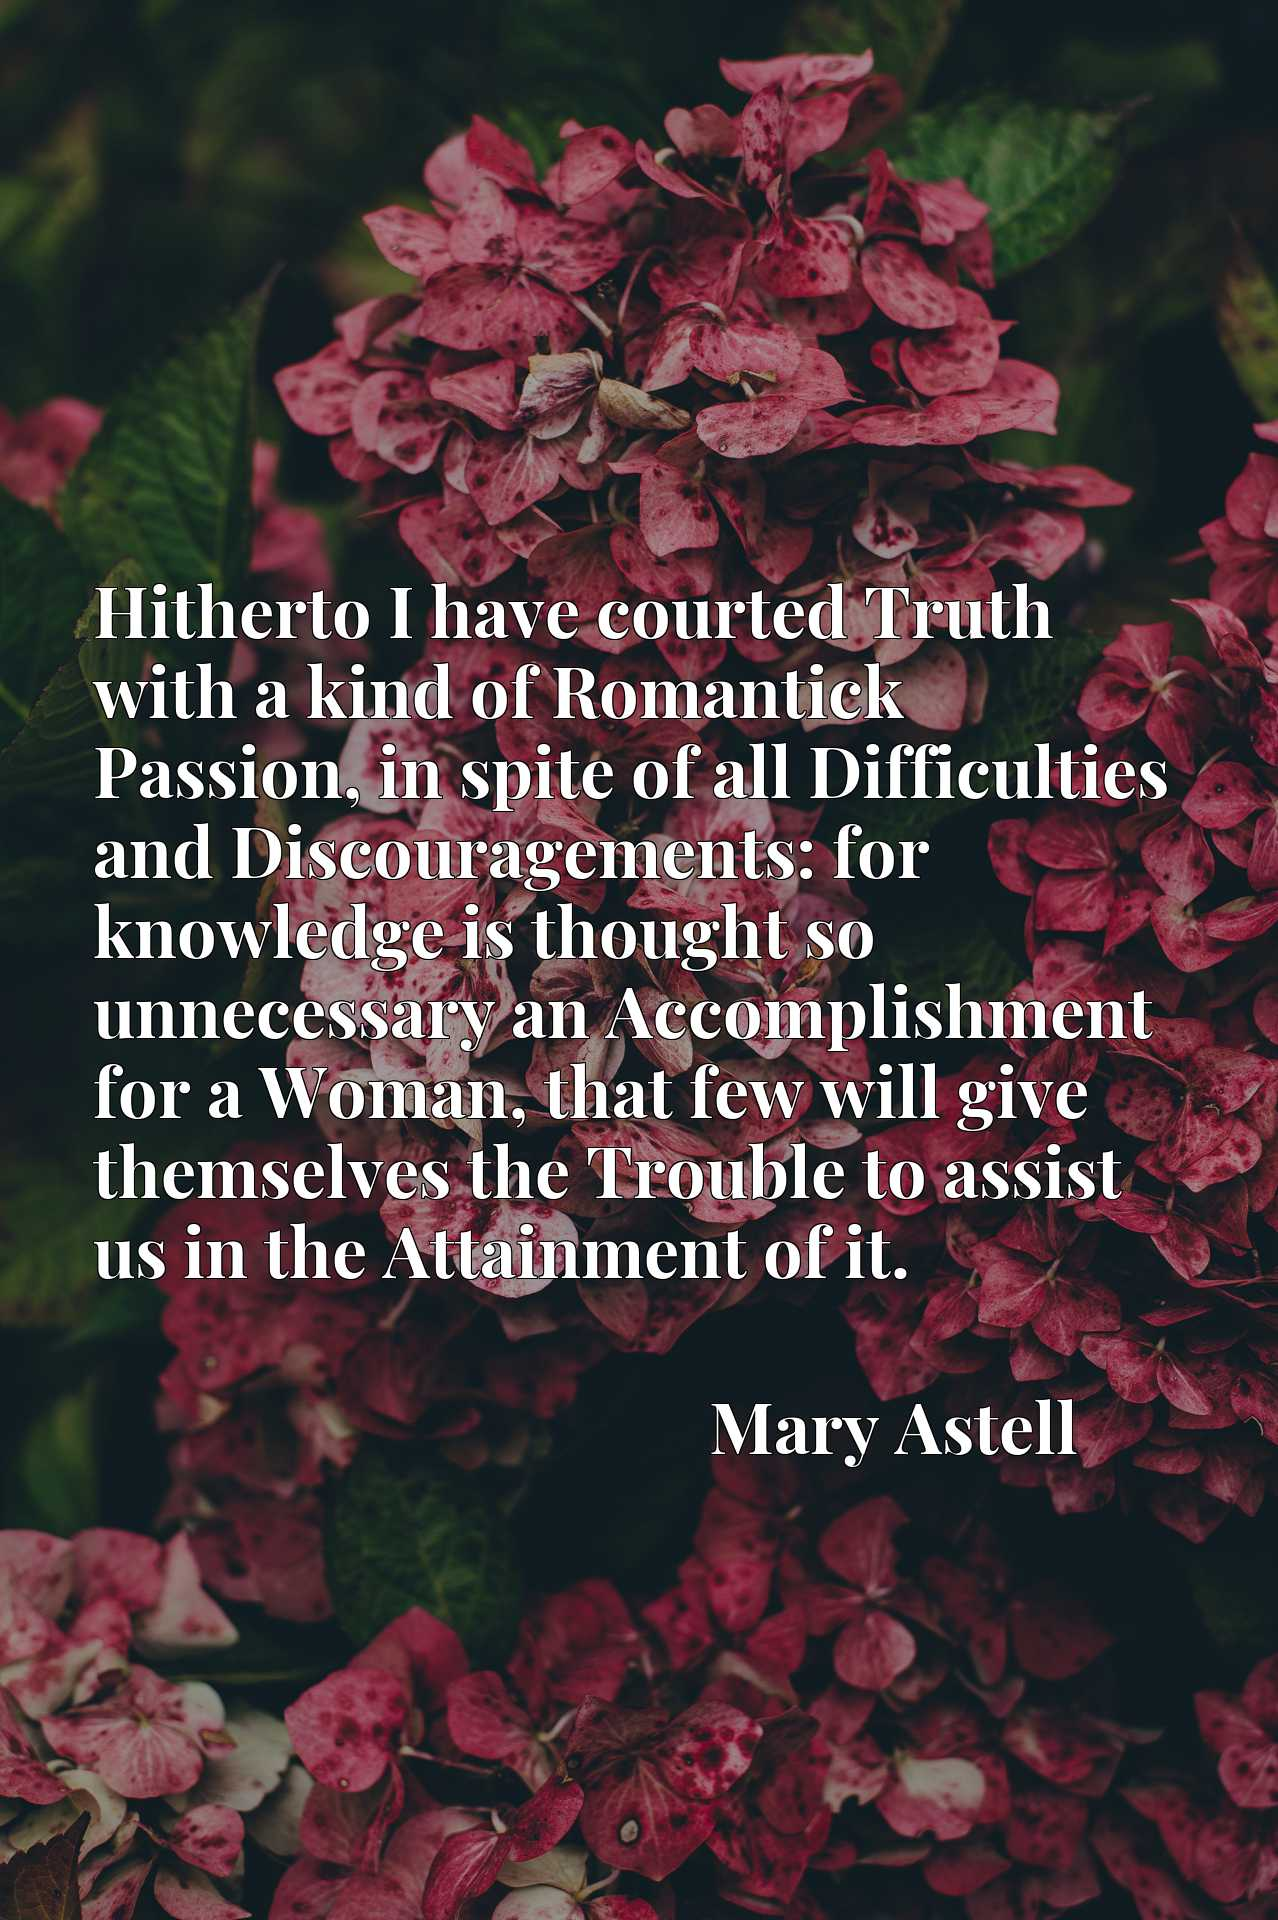 Quote Picture :Hitherto I have courted Truth with a kind of Romantick Passion, in spite of all Difficulties and Discouragements: for knowledge is thought so unnecessary an Accomplishment for a Woman, that few will give themselves the Trouble to assist us in the Attainment of it.